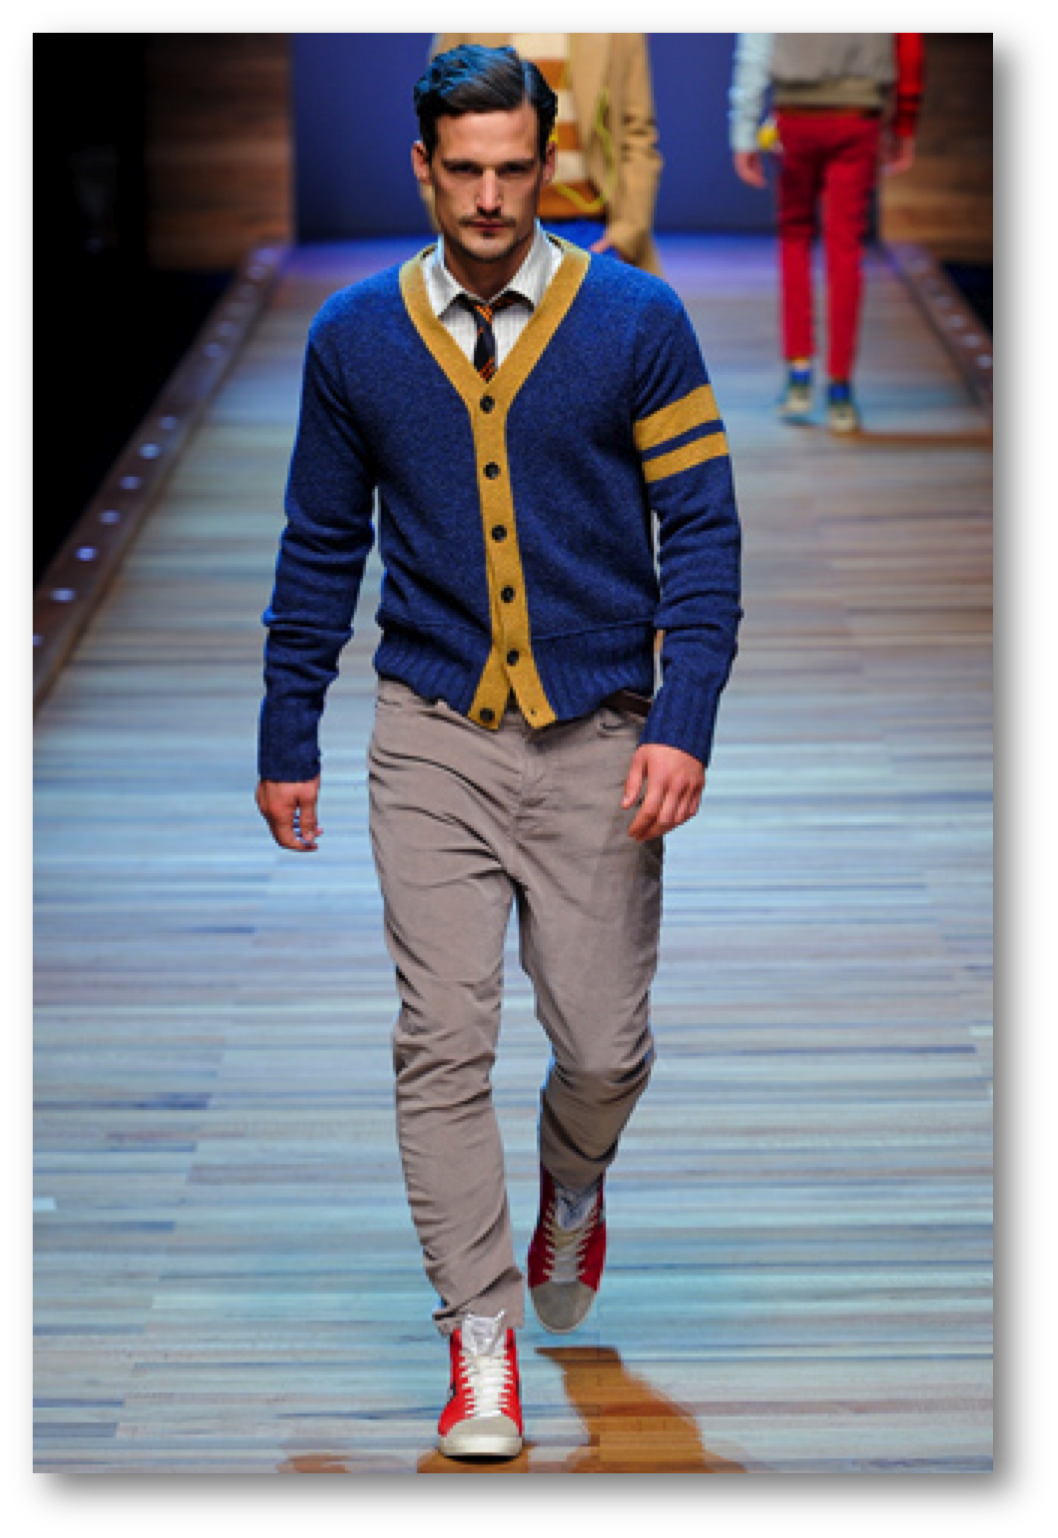 preppy-fashion-for-men_collegiate-fashion-trend-men_preppy-menswear_preppy-style-icons_old-school-preppy-trends_tie-and-preppy-cardigan-fashion_preppy-runway-collections